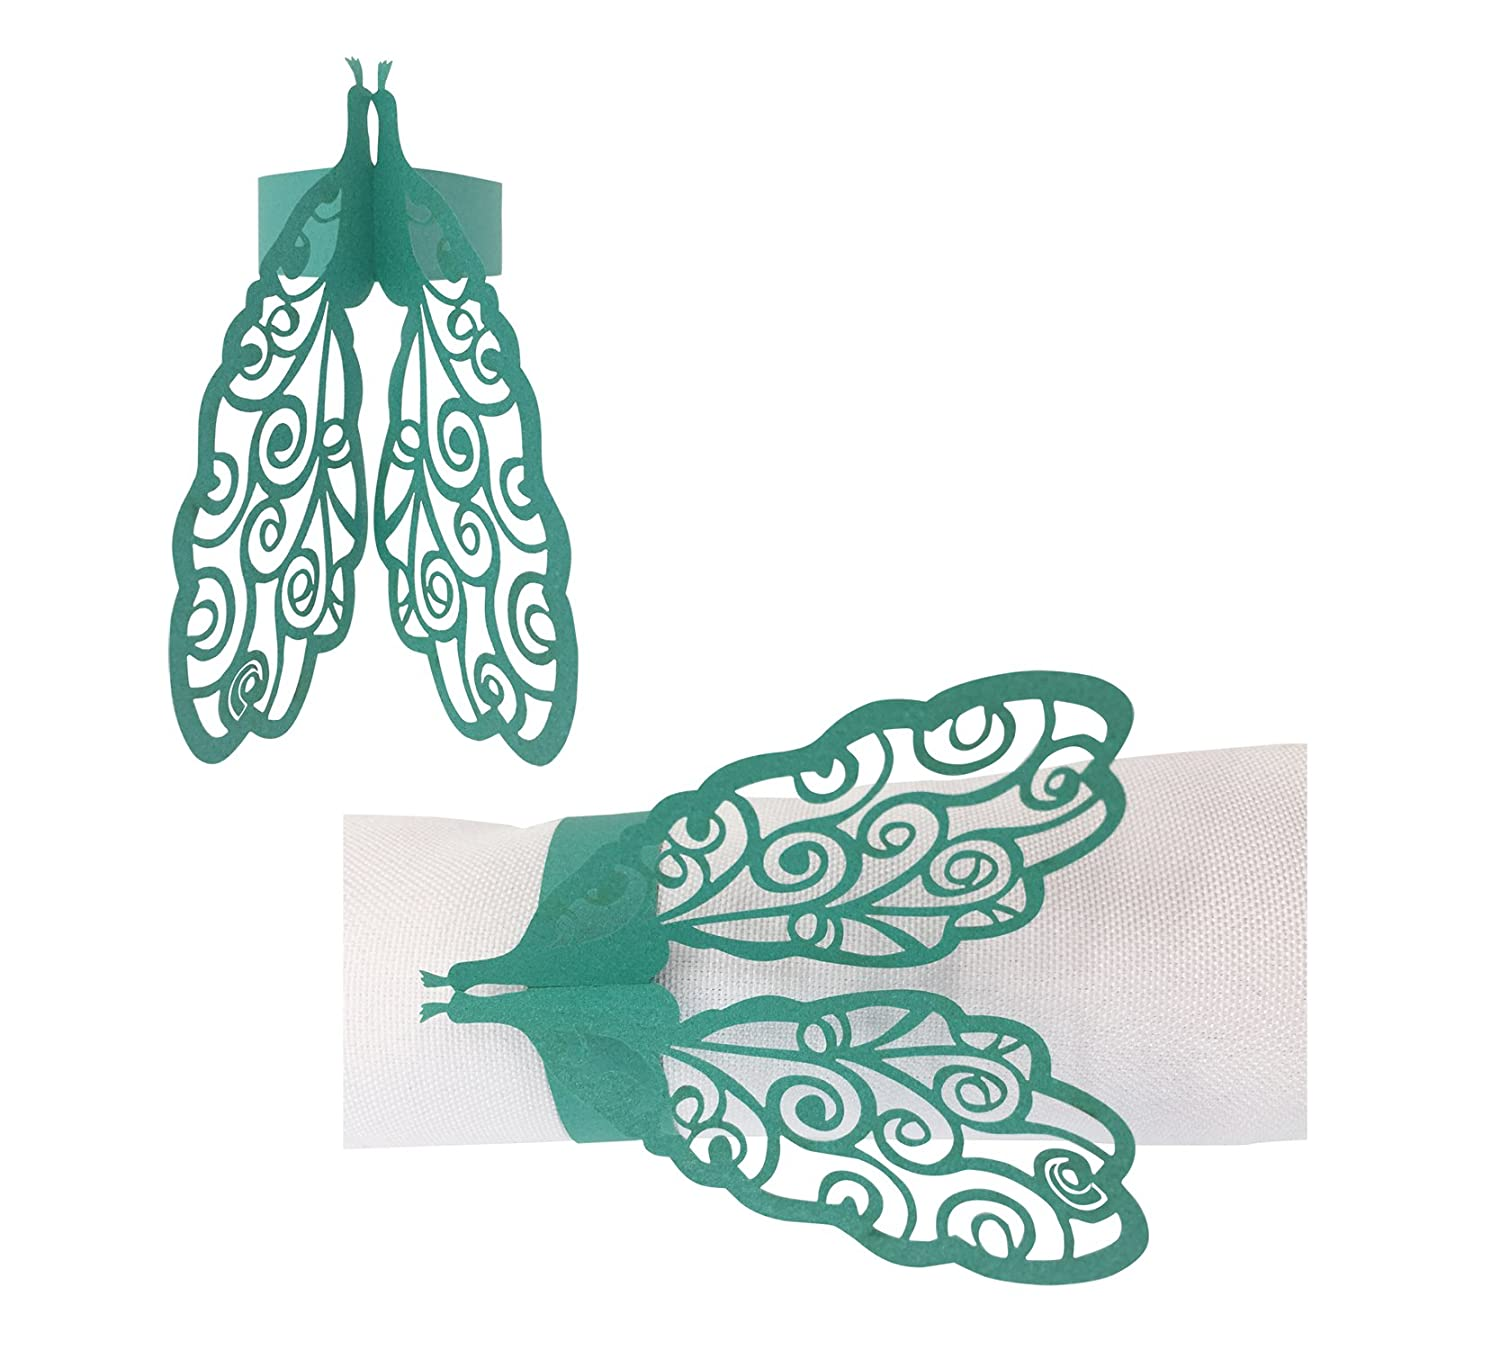 50 PCS Delicate Peacock Pattern Paper Napkin Rings Holders Laser Cut Design paper napkin Rings for Wedding Banquet Dinner Party Decoration Favor (Peacock-Blue) T-shin